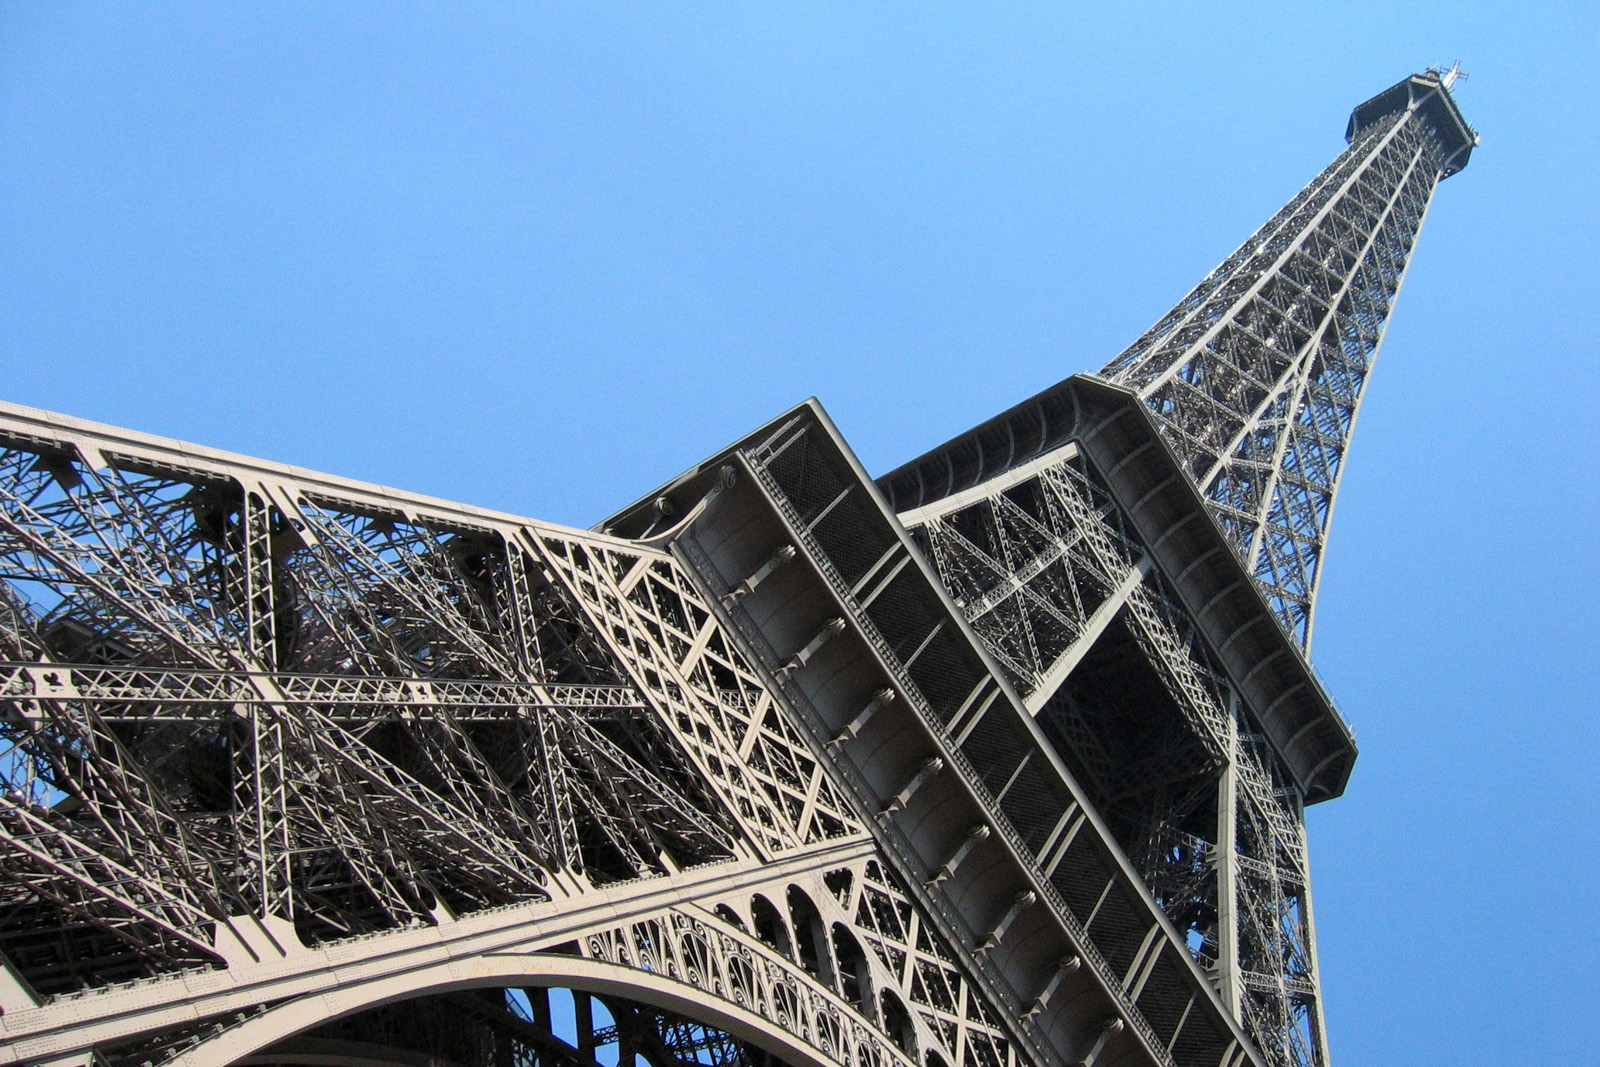 Paris Eiffelturm Wallpaper File:01-eiffelturm Paris